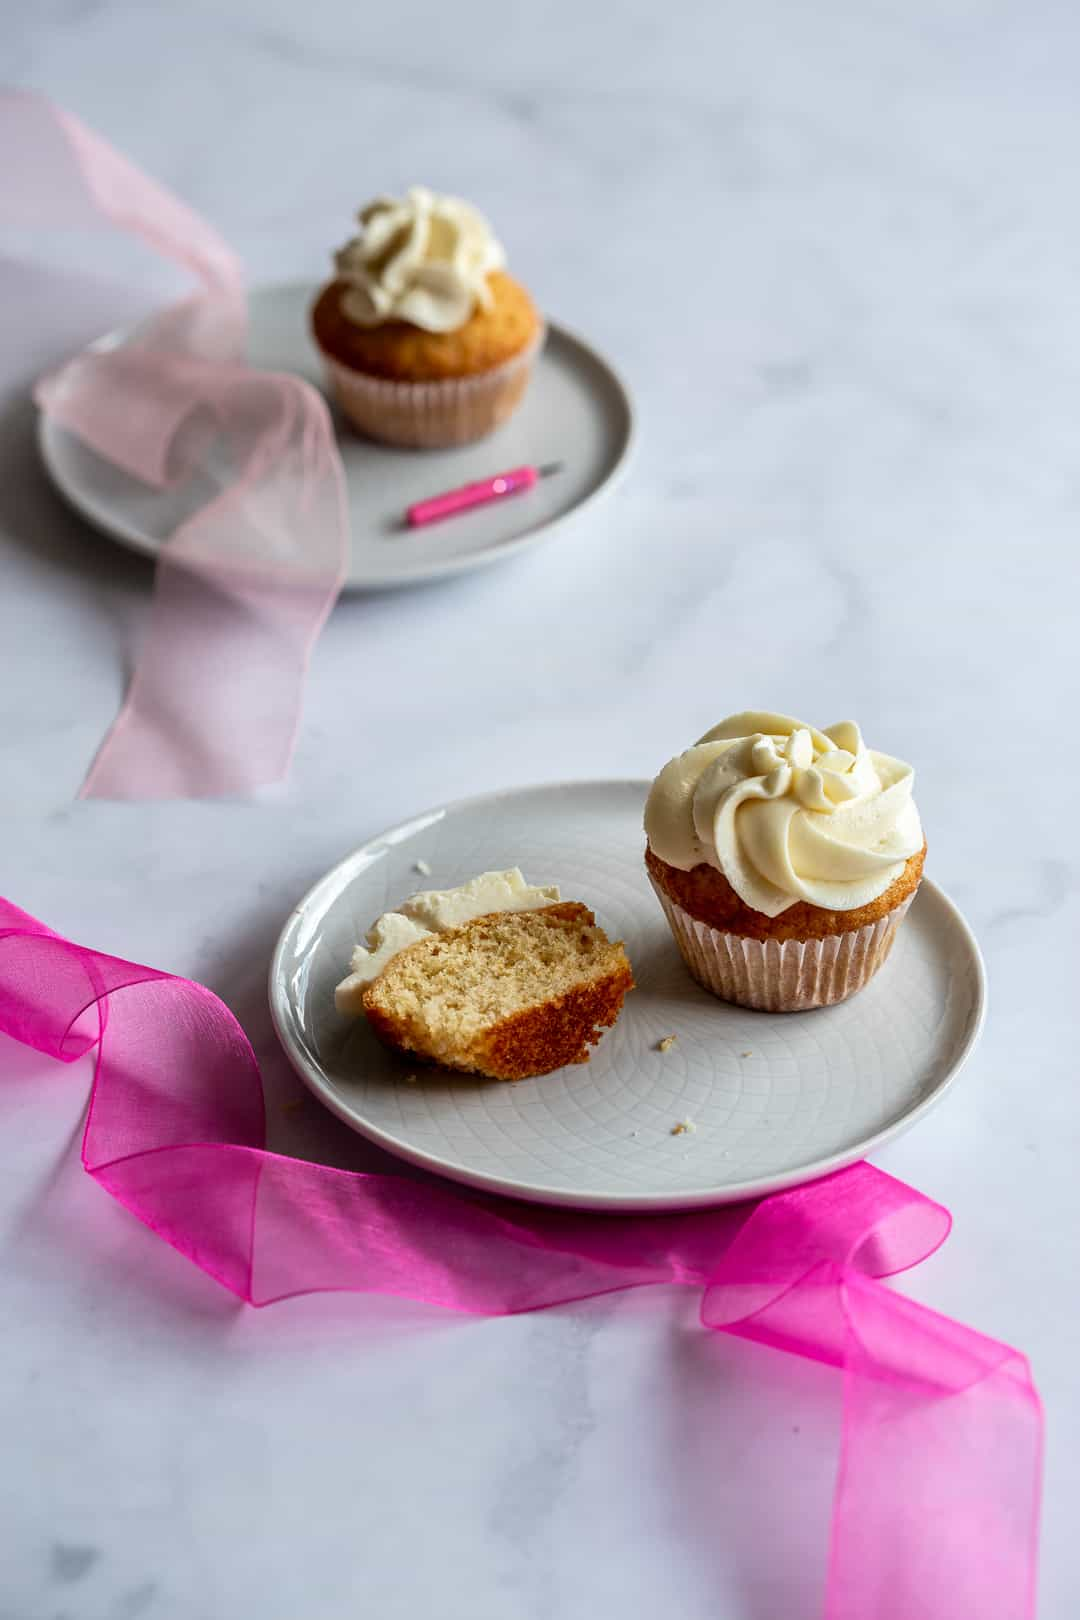 cupcakes on two plates with a candle on one